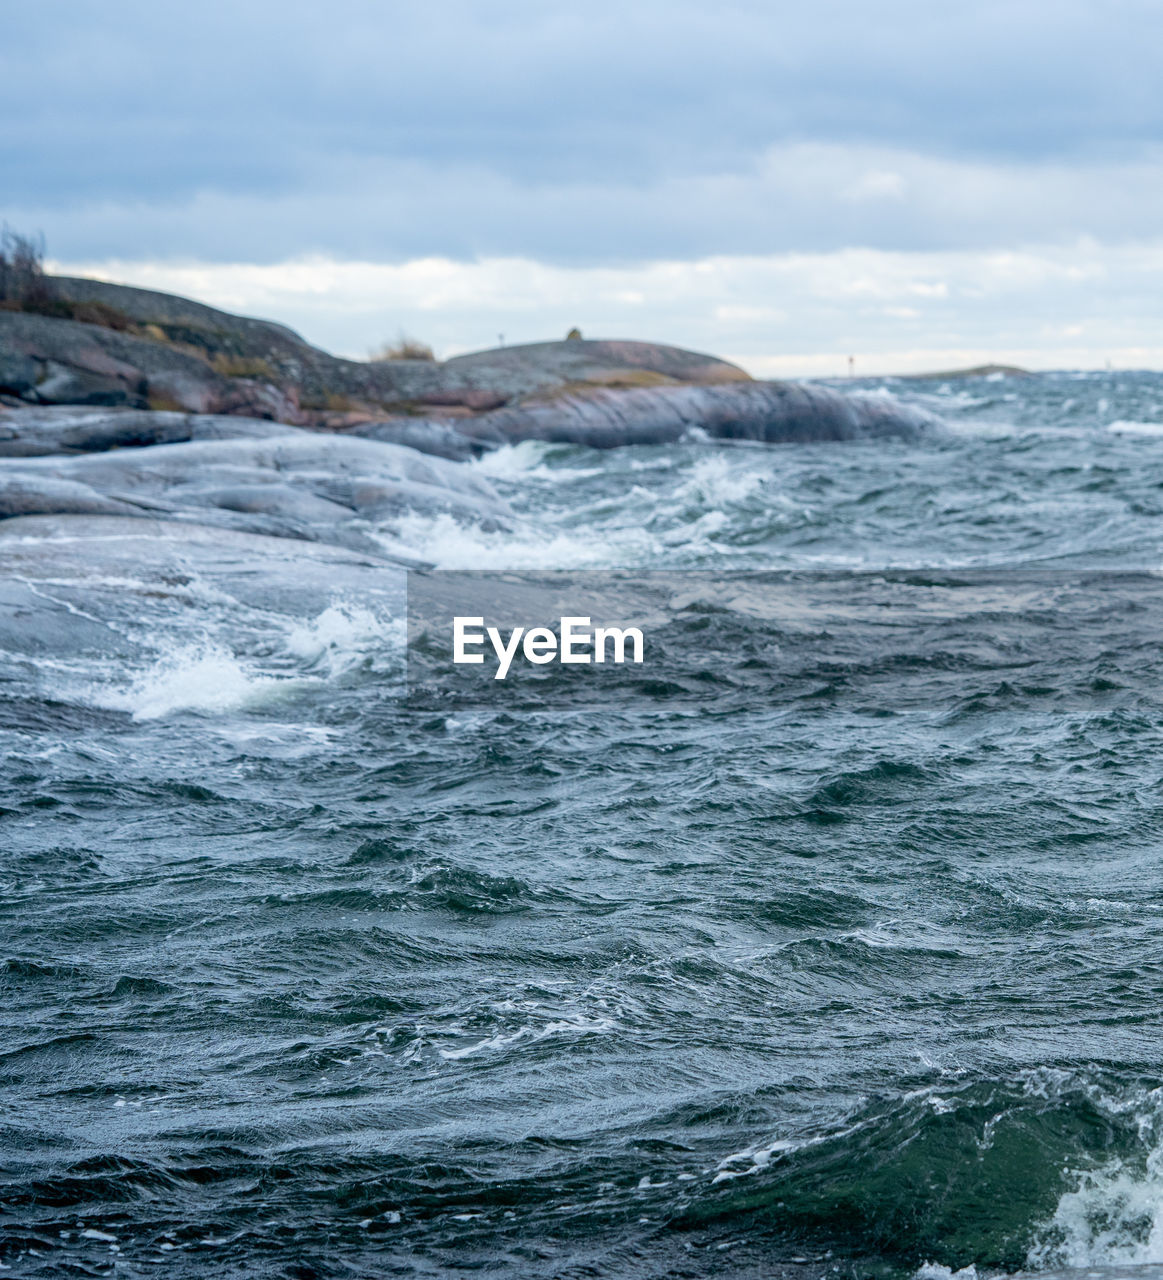 sea, water, waterfront, motion, sky, beauty in nature, scenics - nature, cloud - sky, wave, no people, day, nature, outdoors, sport, aquatic sport, splashing, power in nature, idyllic, non-urban scene, marine, flowing water